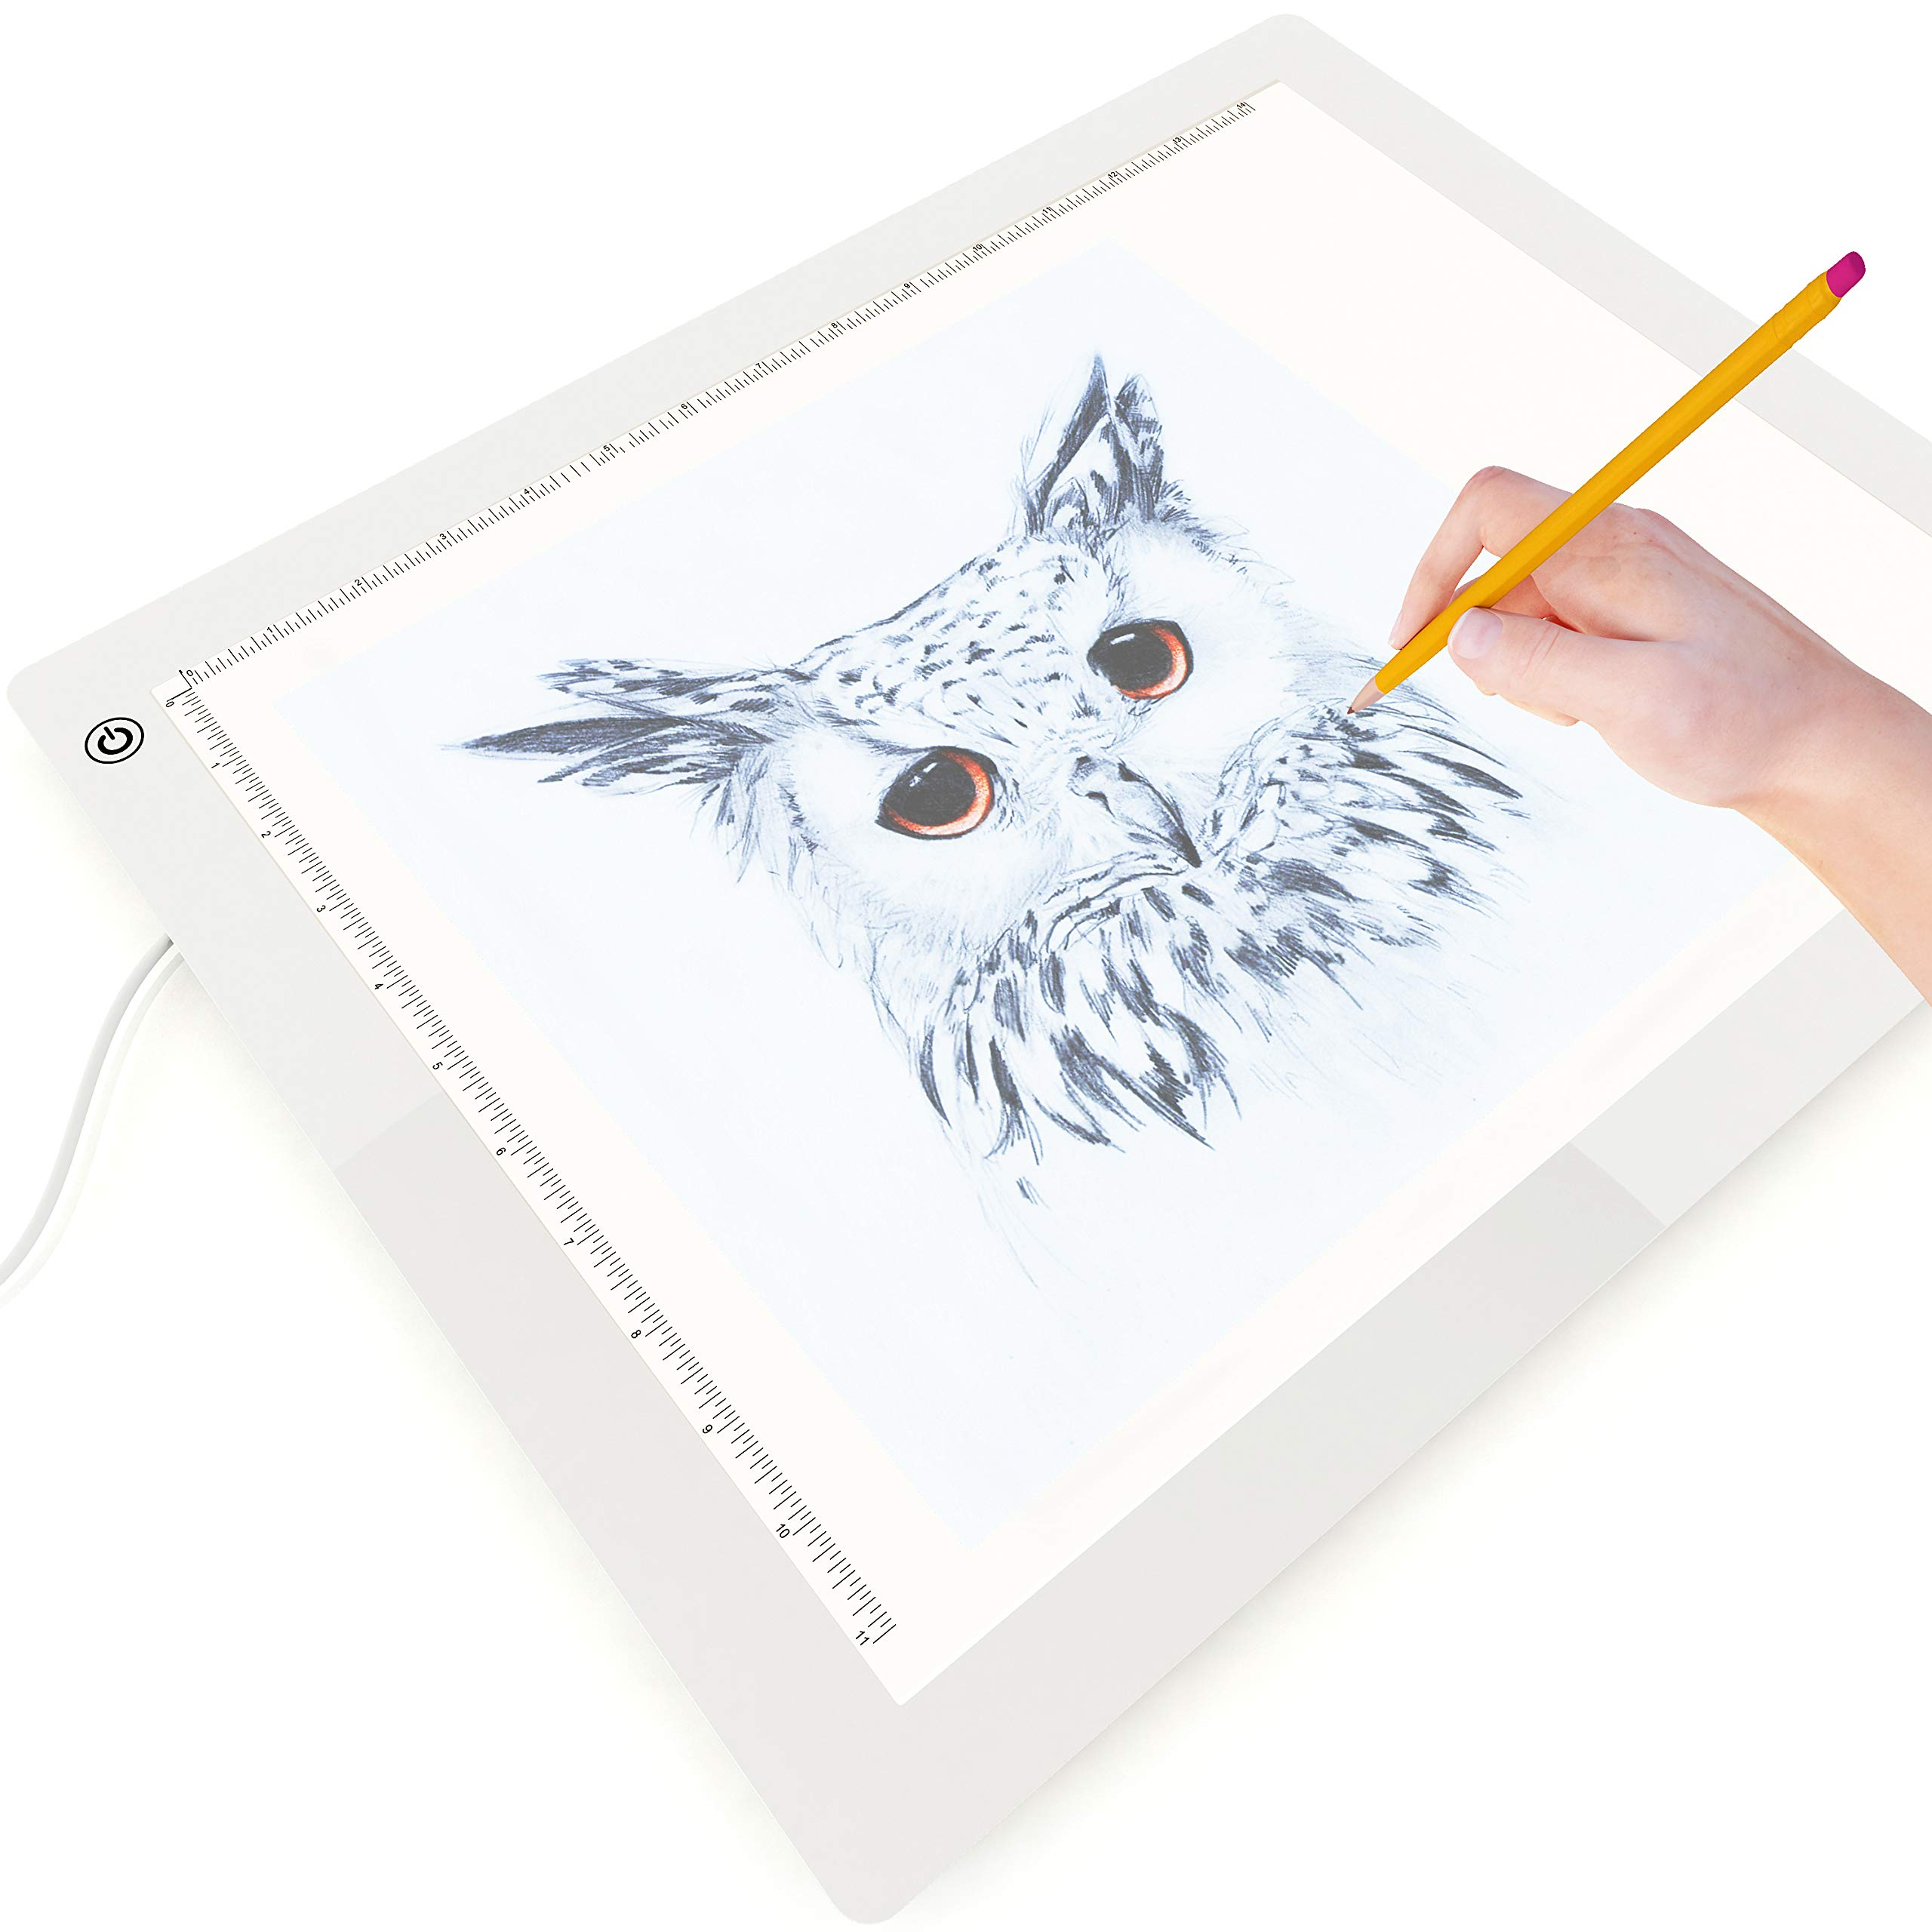 Picture/Perfect Best Light Box for Diamond Painting & Tracing - Large Grid-Free A3 Light Pad - Advanced Filter to Prevent Eye Fatigue, 17x14 inch, Hi, Mid & Low Brightness, Tracing Paper Included by PicturePerfect